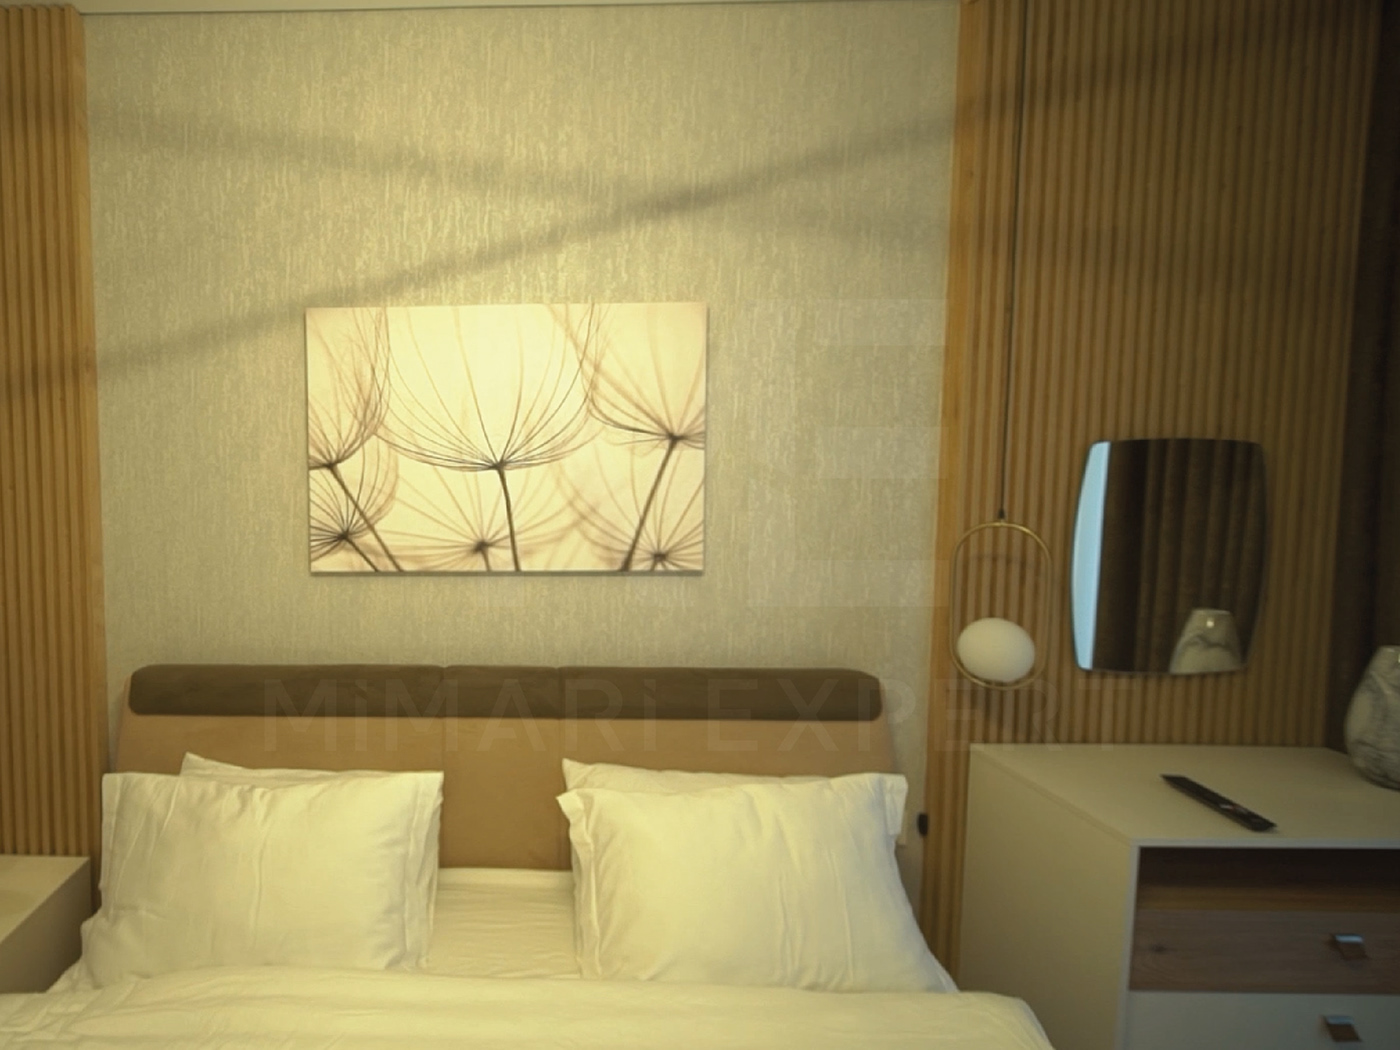 3d design architecture art decorations Engineering  Engineering Projects false ceilings furniture living rooms wall paper